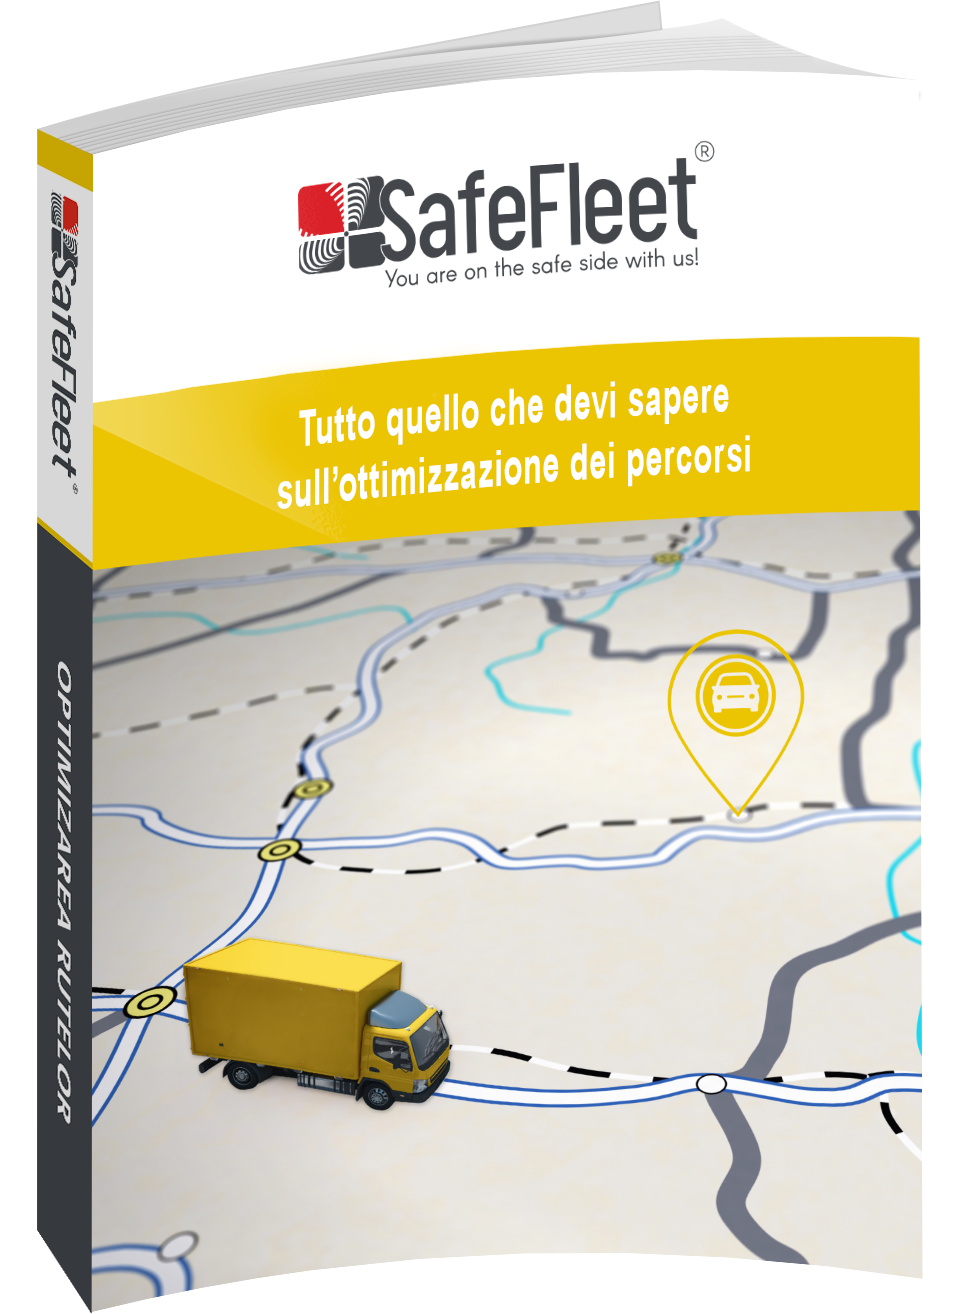 Cover_eBook-Rutare-Trasee-ita.png